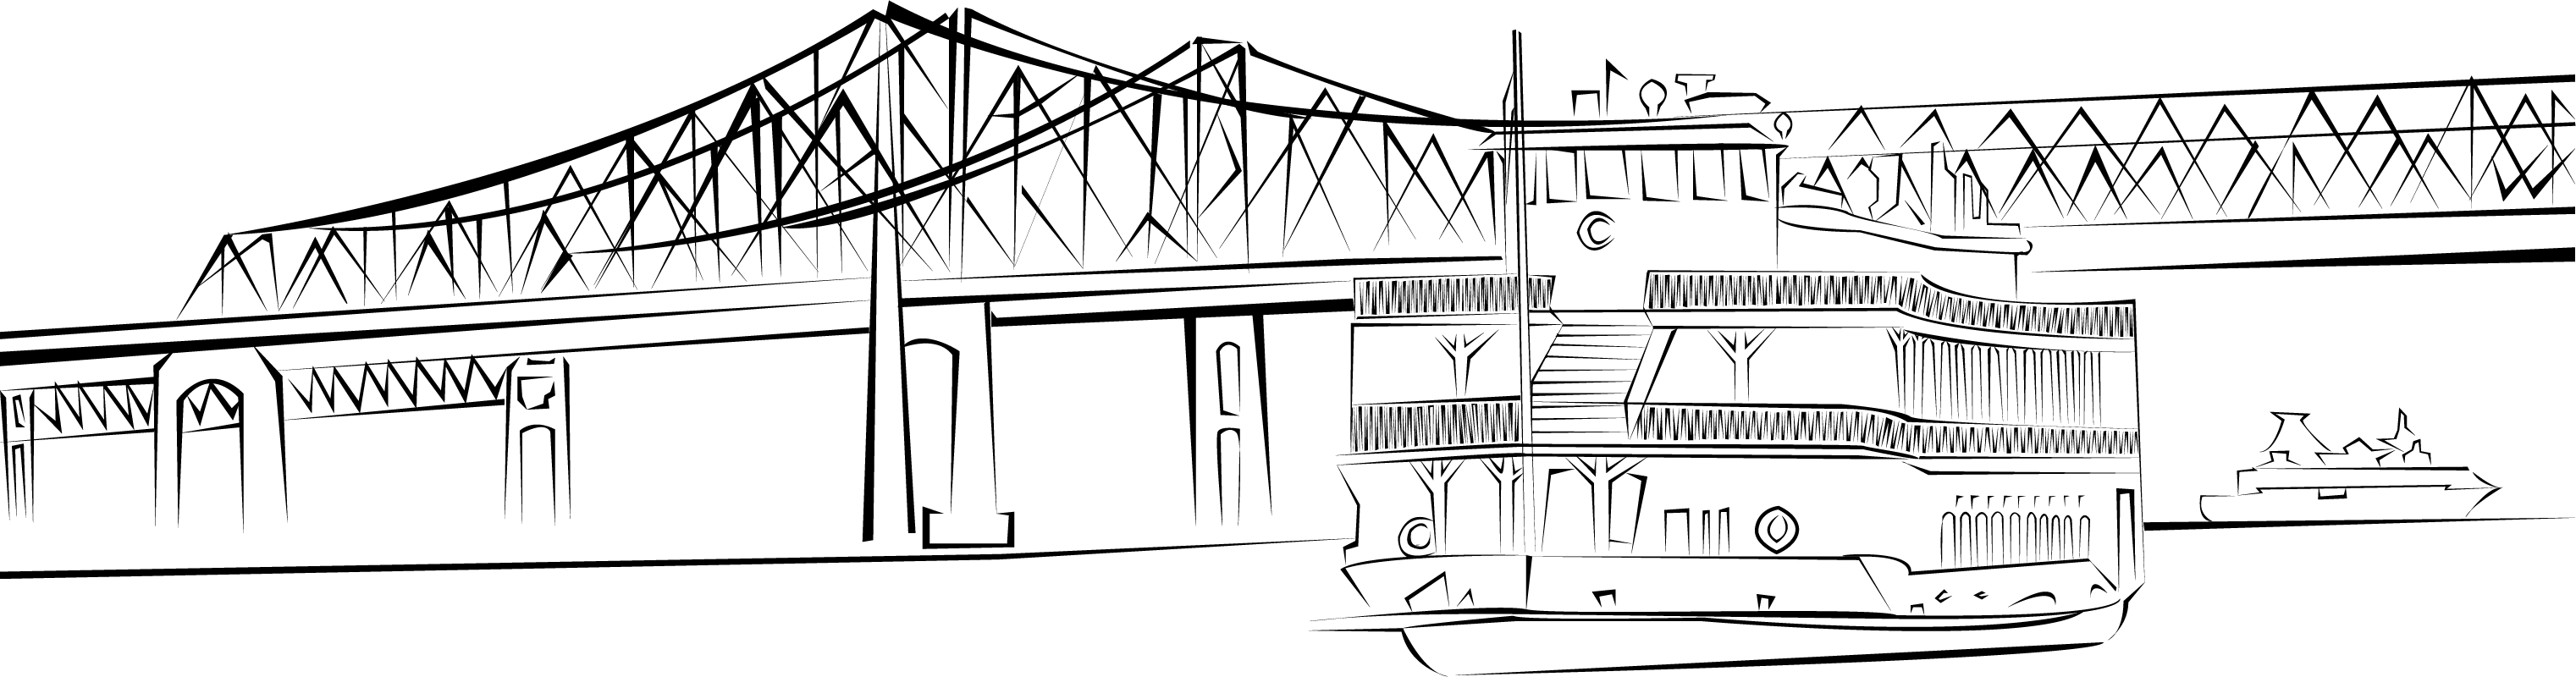 graphic freeuse New orleans steam boat. Bridge clipart black and white